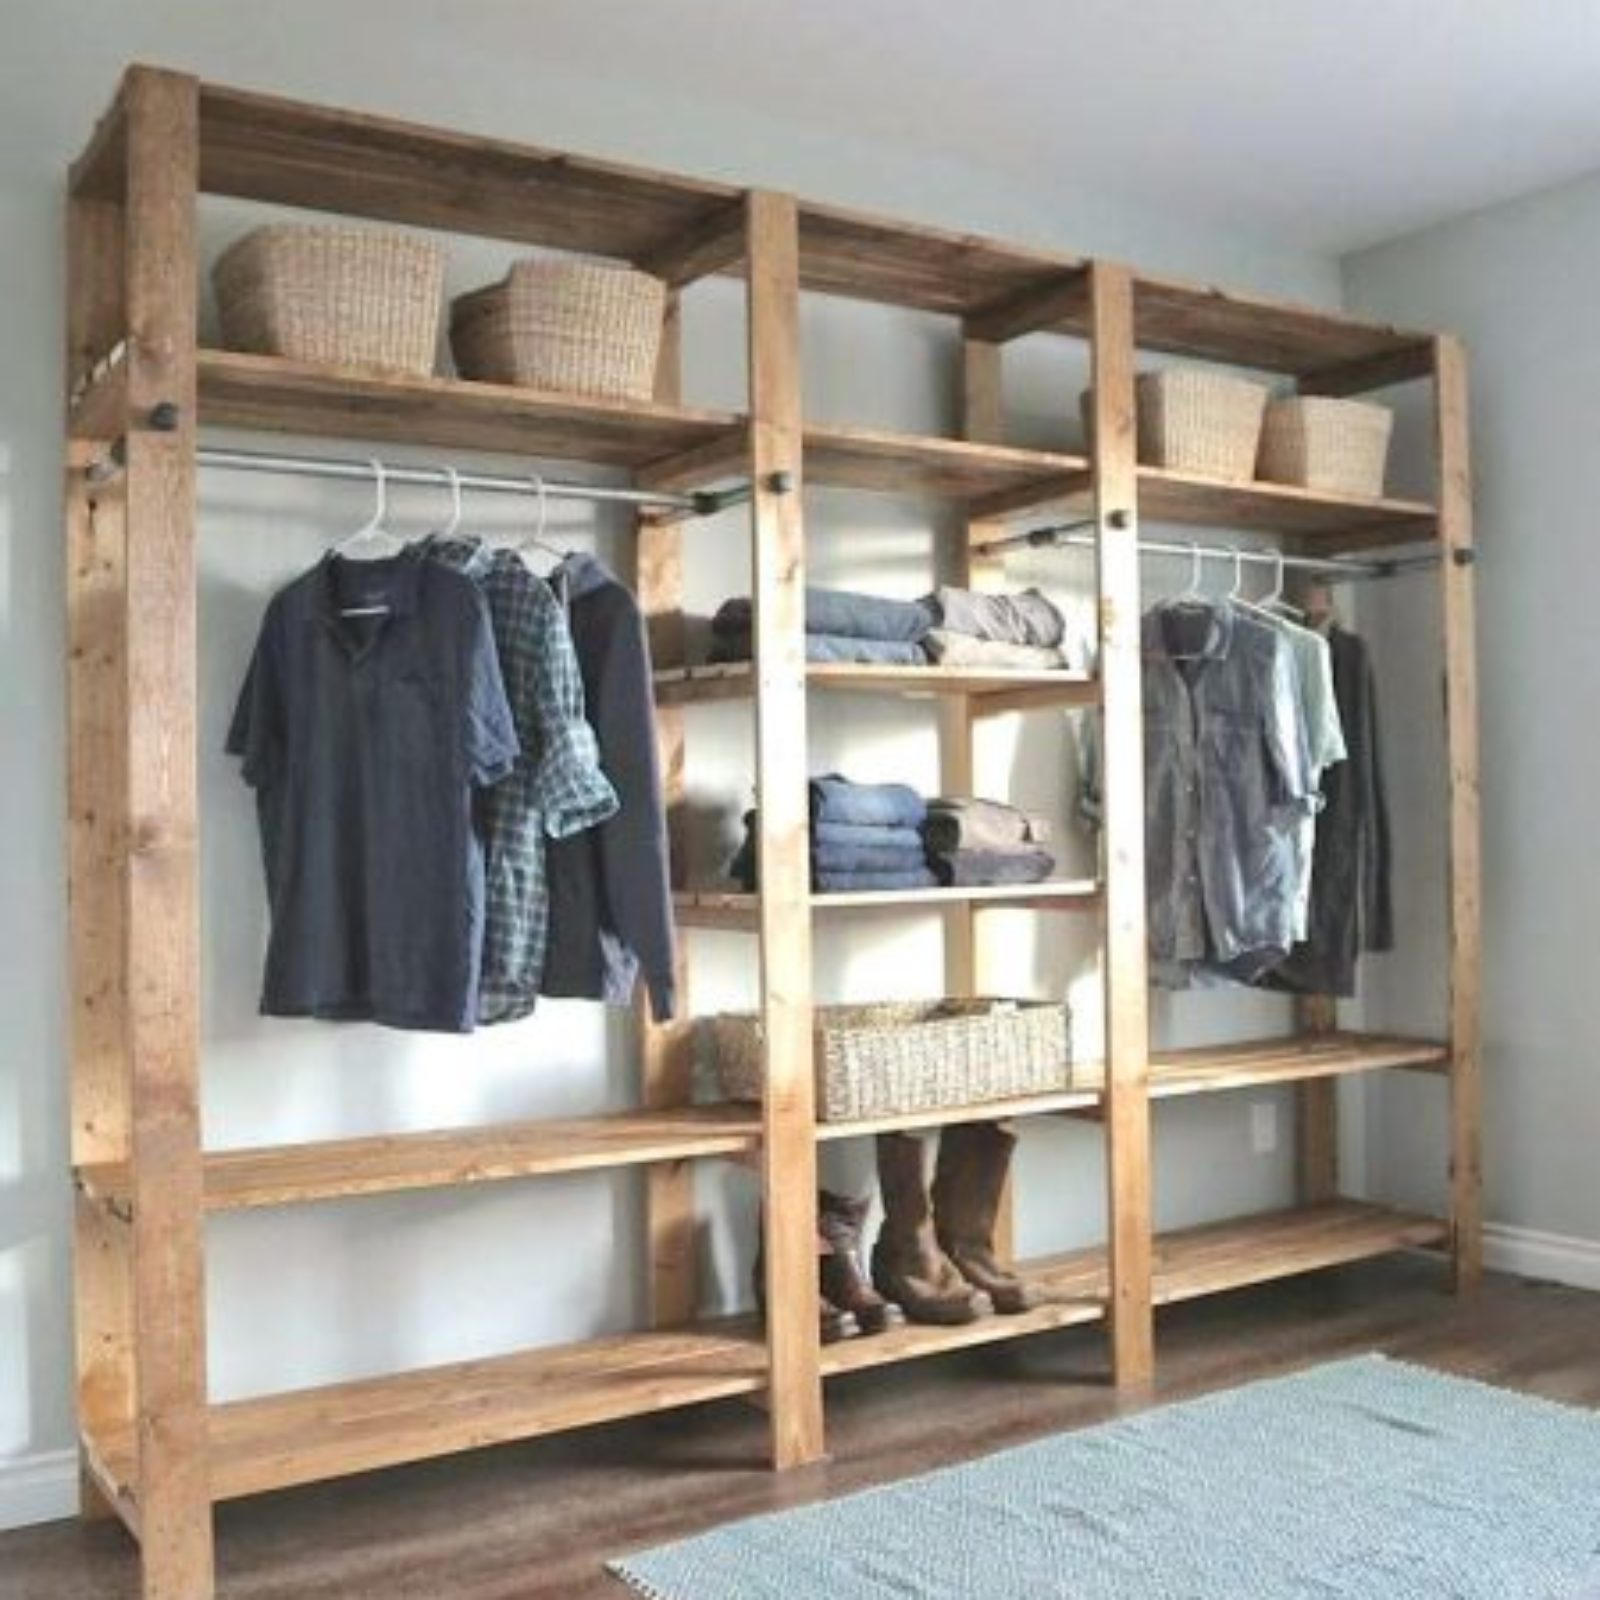 clothes-cupboard-storage-solutions-fixer-upper-style-101-free-diy-furniture-plans-clothes-closet-storage-solutions-baby-clothes-storage-cupboards-449×500